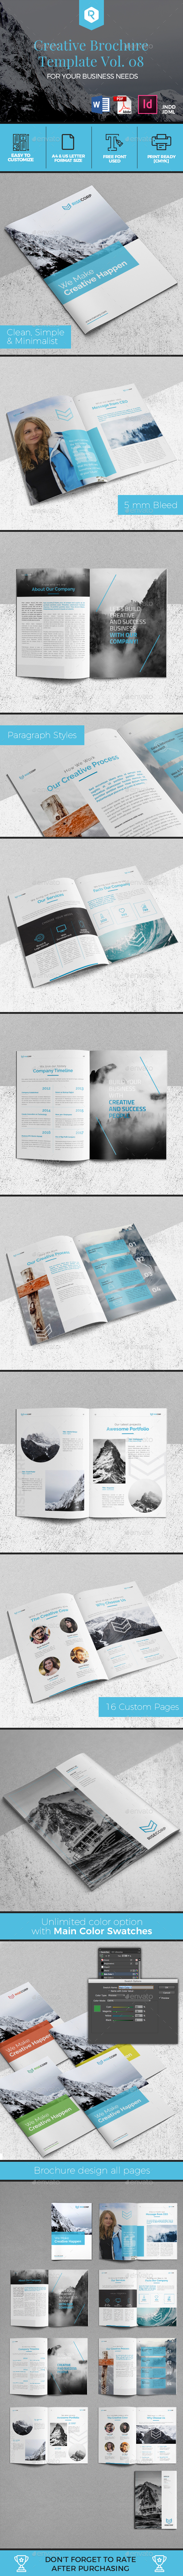 Creative Brochure Template Vol. 08 - Corporate Brochures